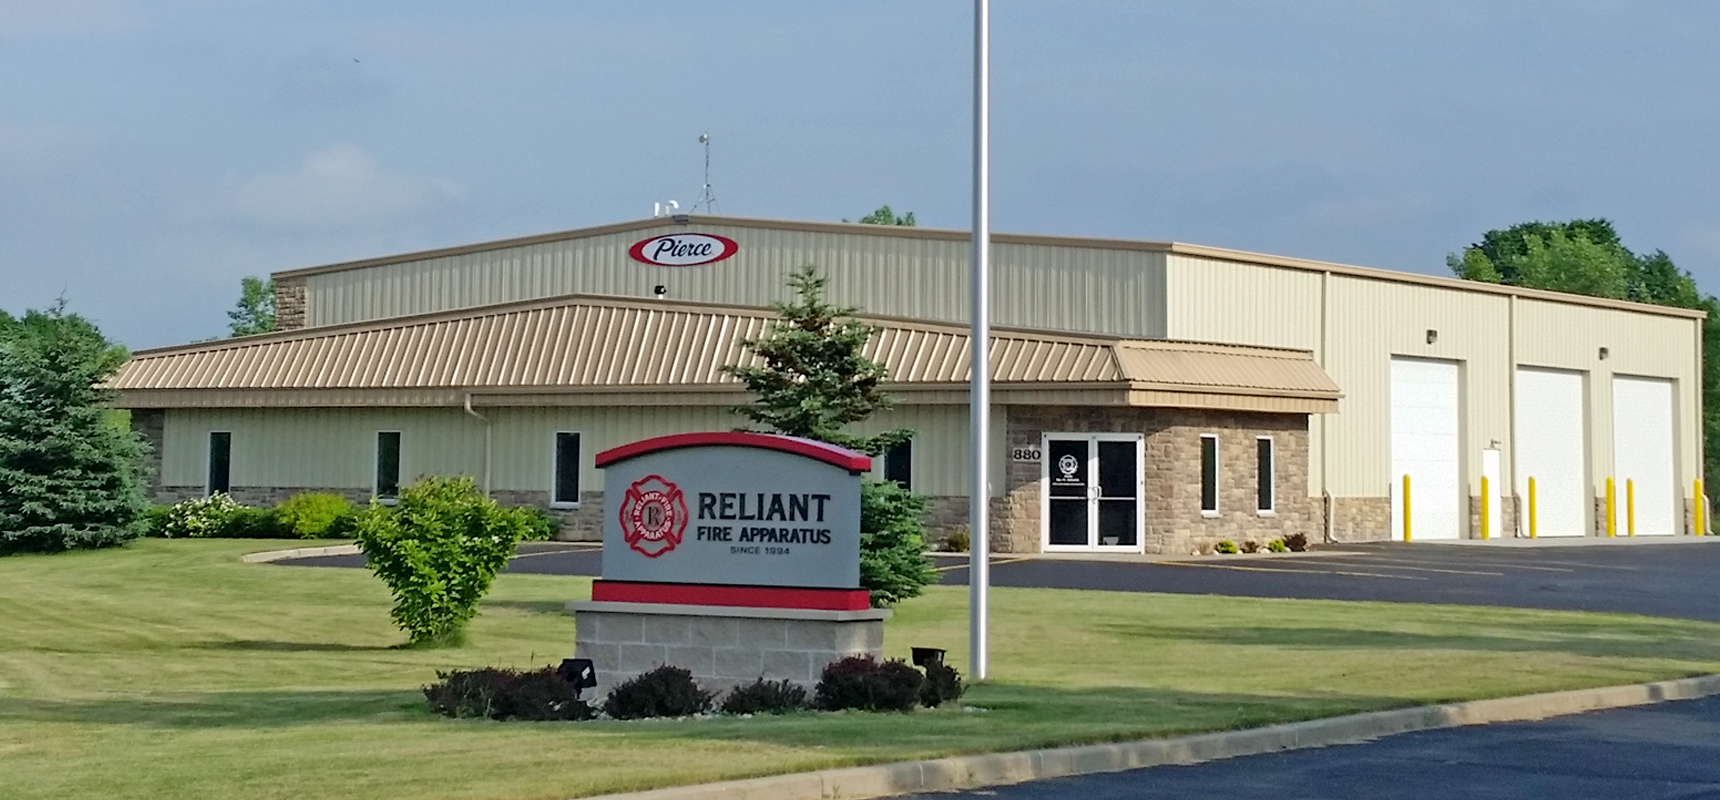 Pierce dealer, Reliant Fire Apparatus, has opened a new service center in Slinger, WI